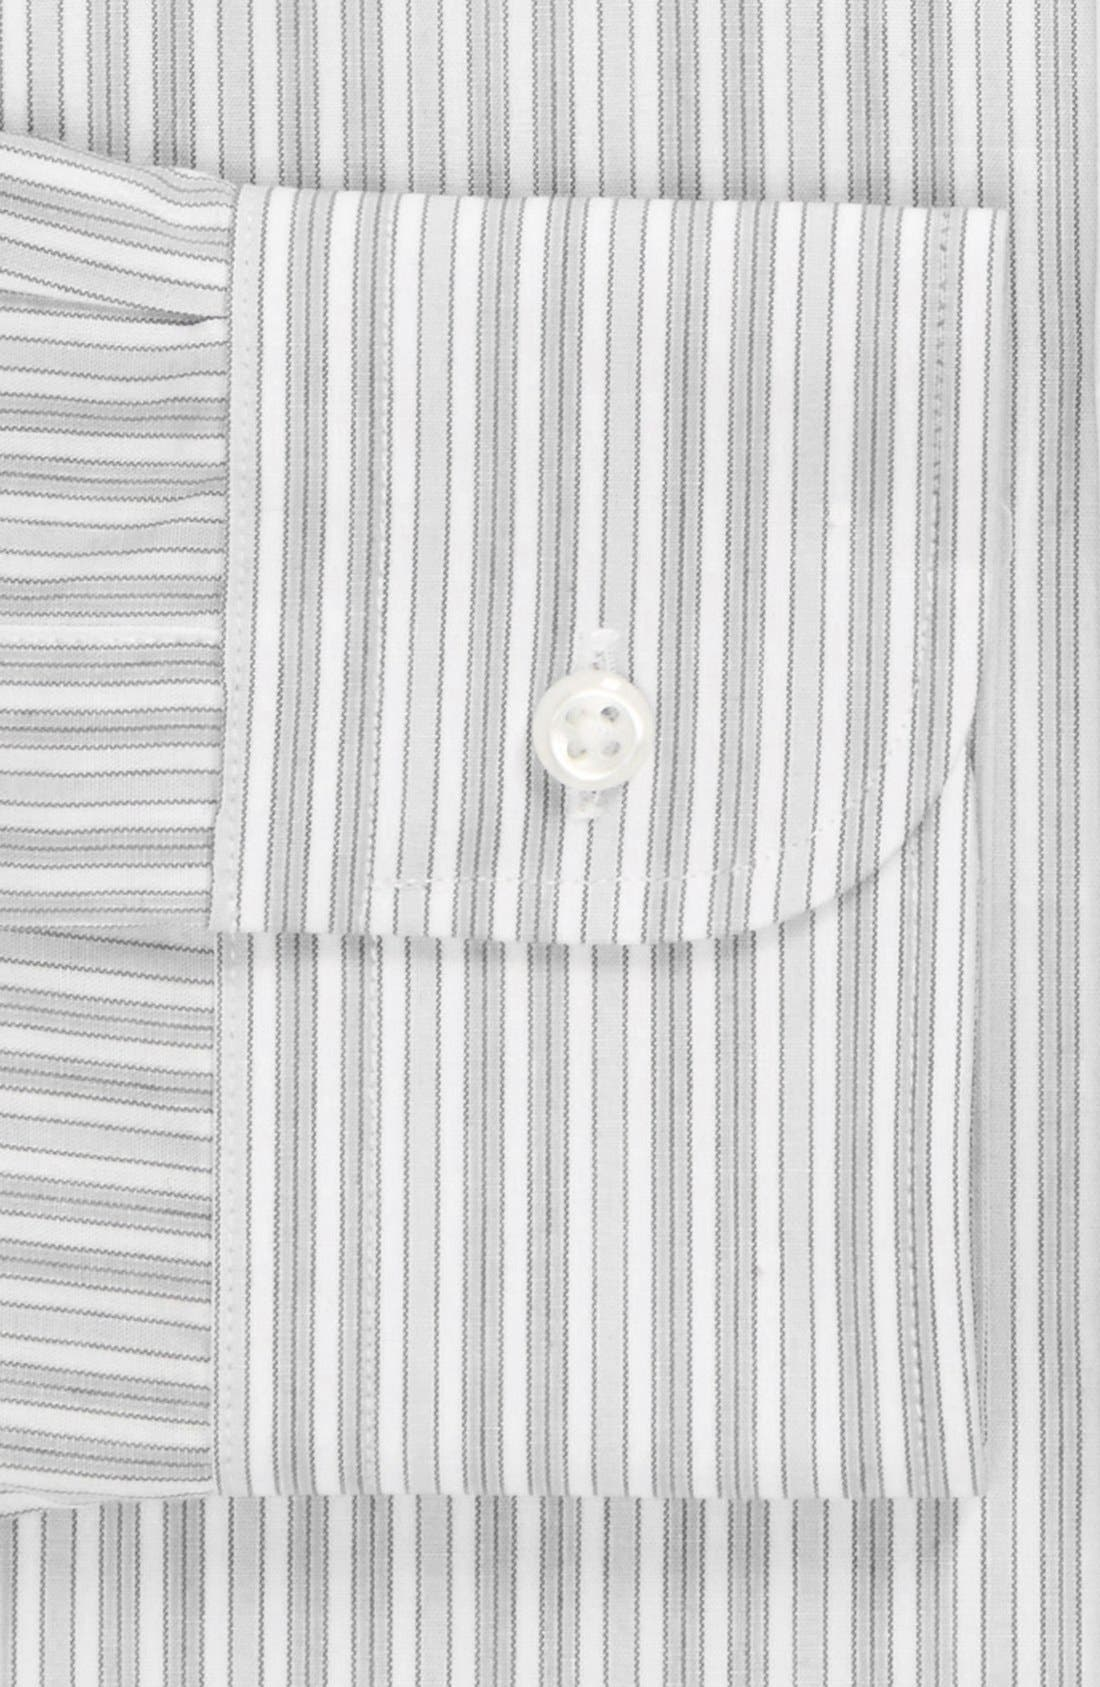 Nordstrom Classic Fit Non-Iron Dress Shirt,                             Alternate thumbnail 2, color,                             Grey- Horizon